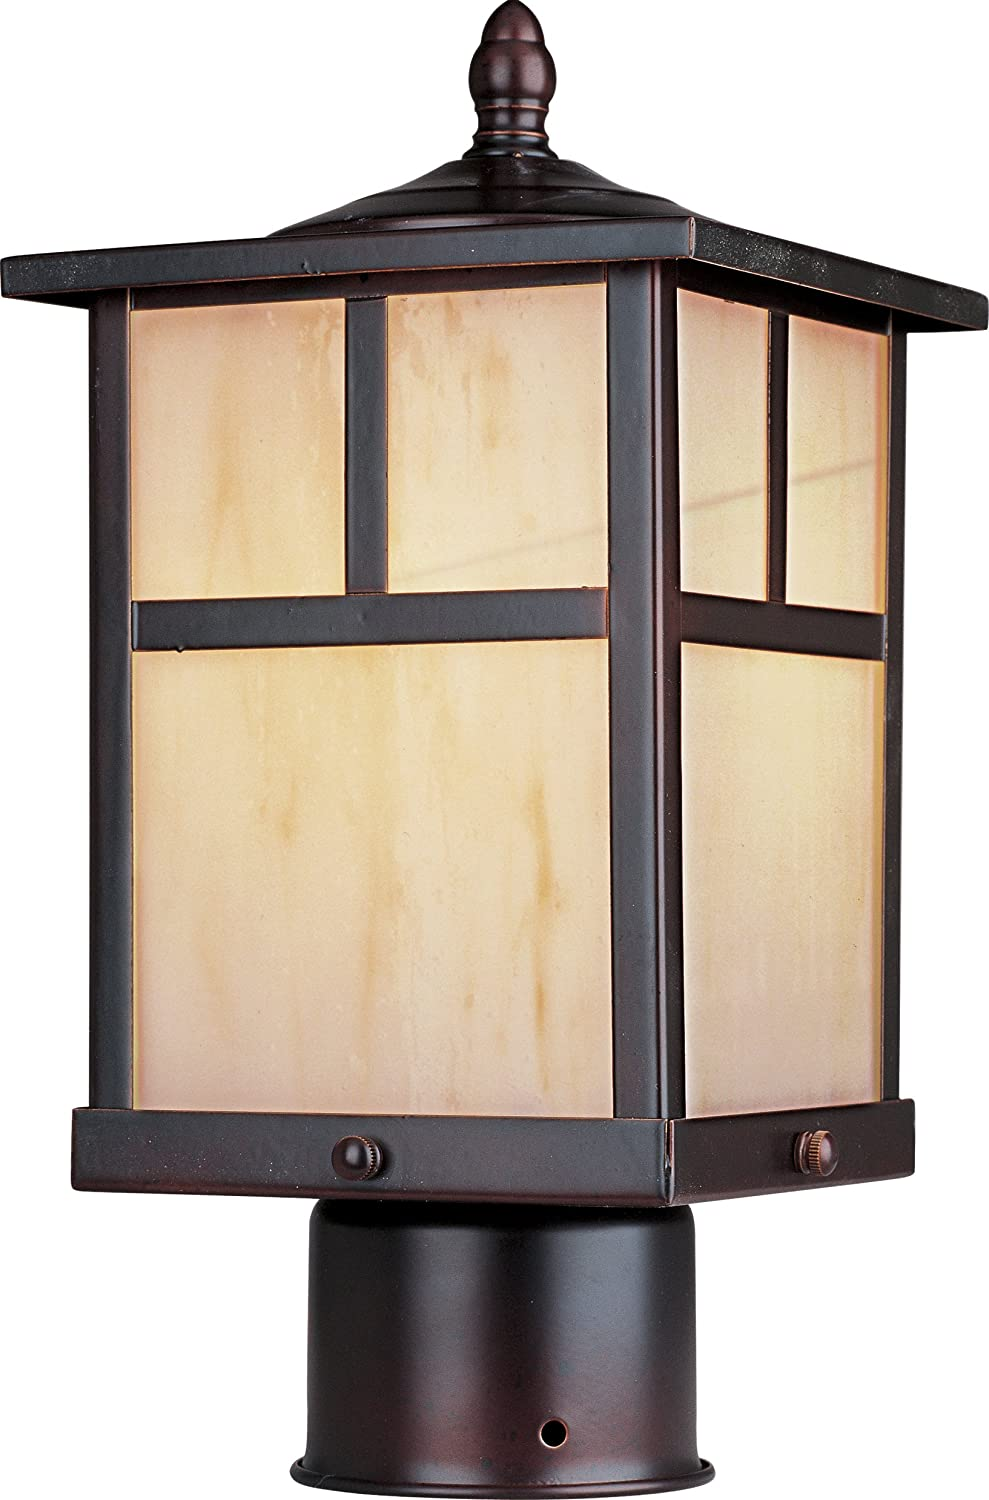 Maxim Lighting 55055 Coldwater LED Outdoor Pole/Post Mount Lantern, Burnished Finish, 6 by 12-Inch by Maxim Lighting B00T63R4ZQ